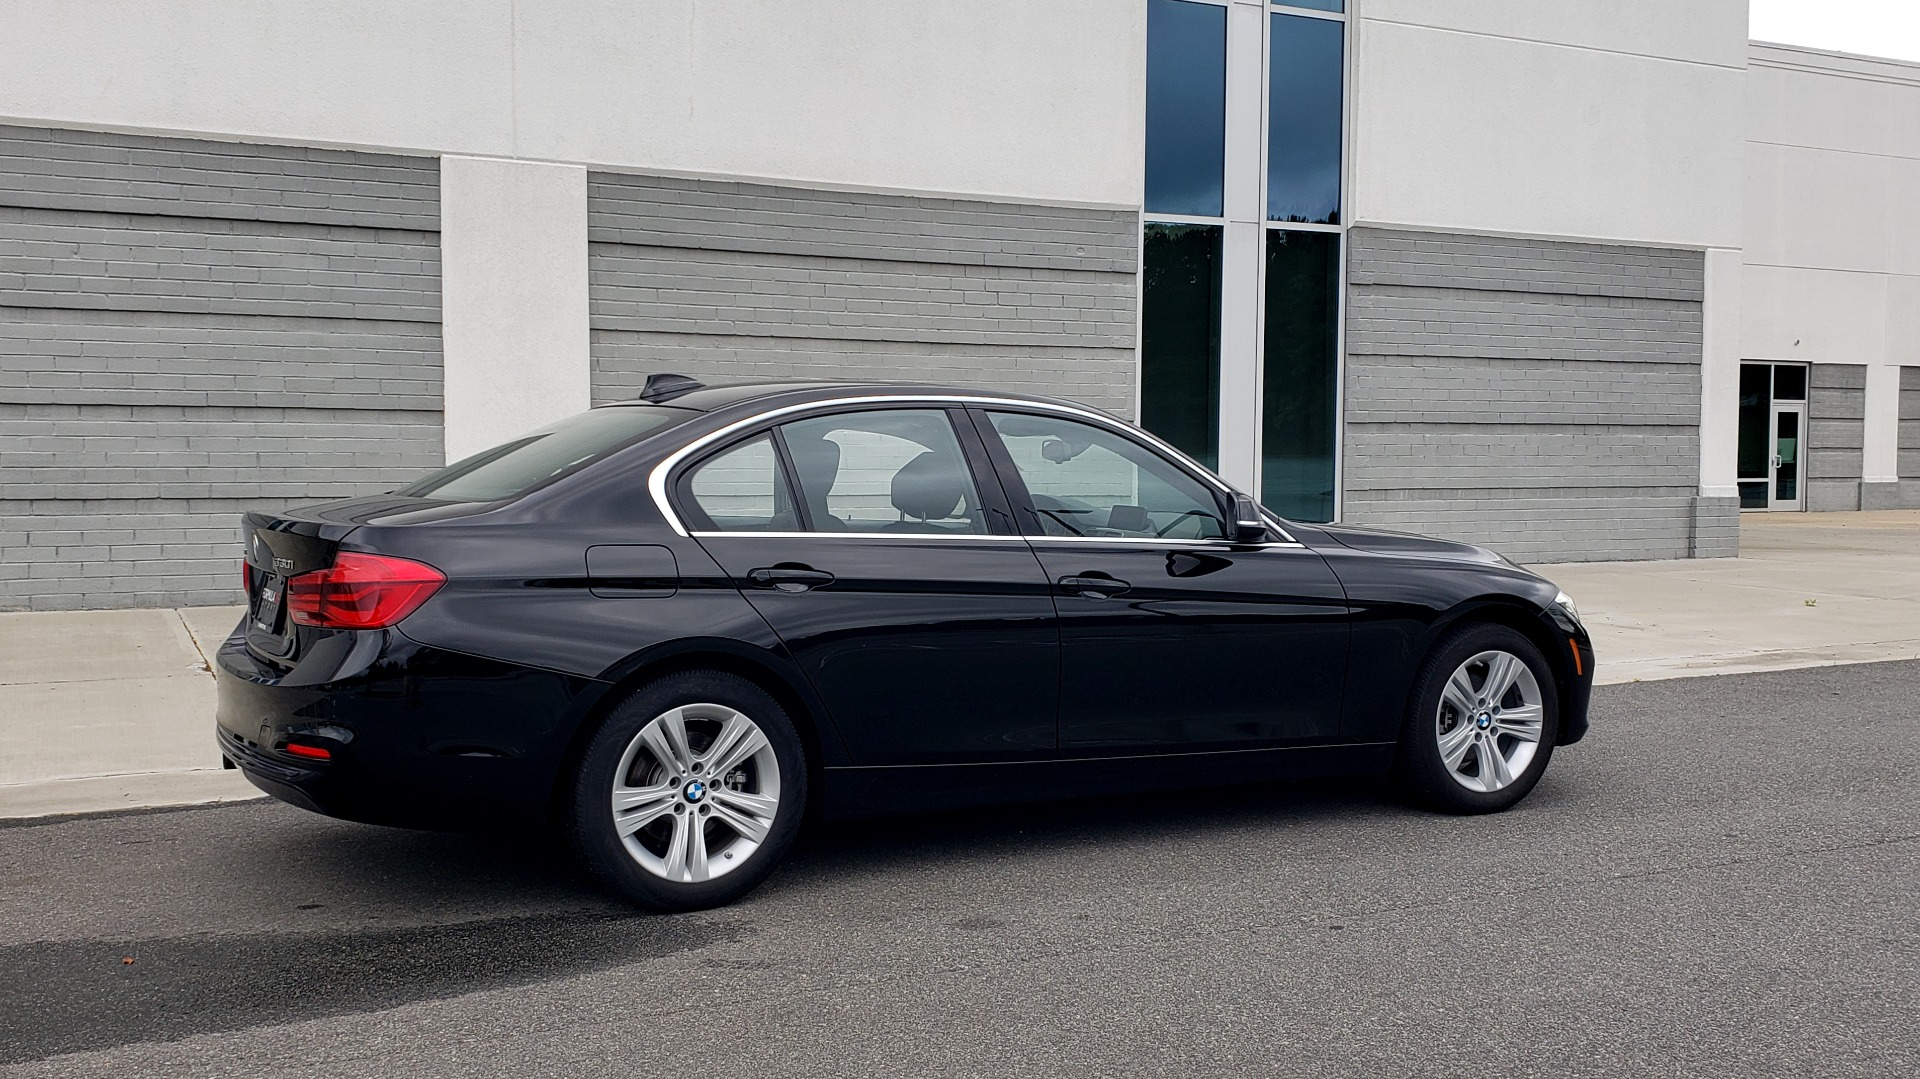 Used 2018 BMW 3 SERIES 330IXDRIVE / CONV PKG / NAV / SUNROOF / HTD STS / REARVIEW for sale $26,552 at Formula Imports in Charlotte NC 28227 8